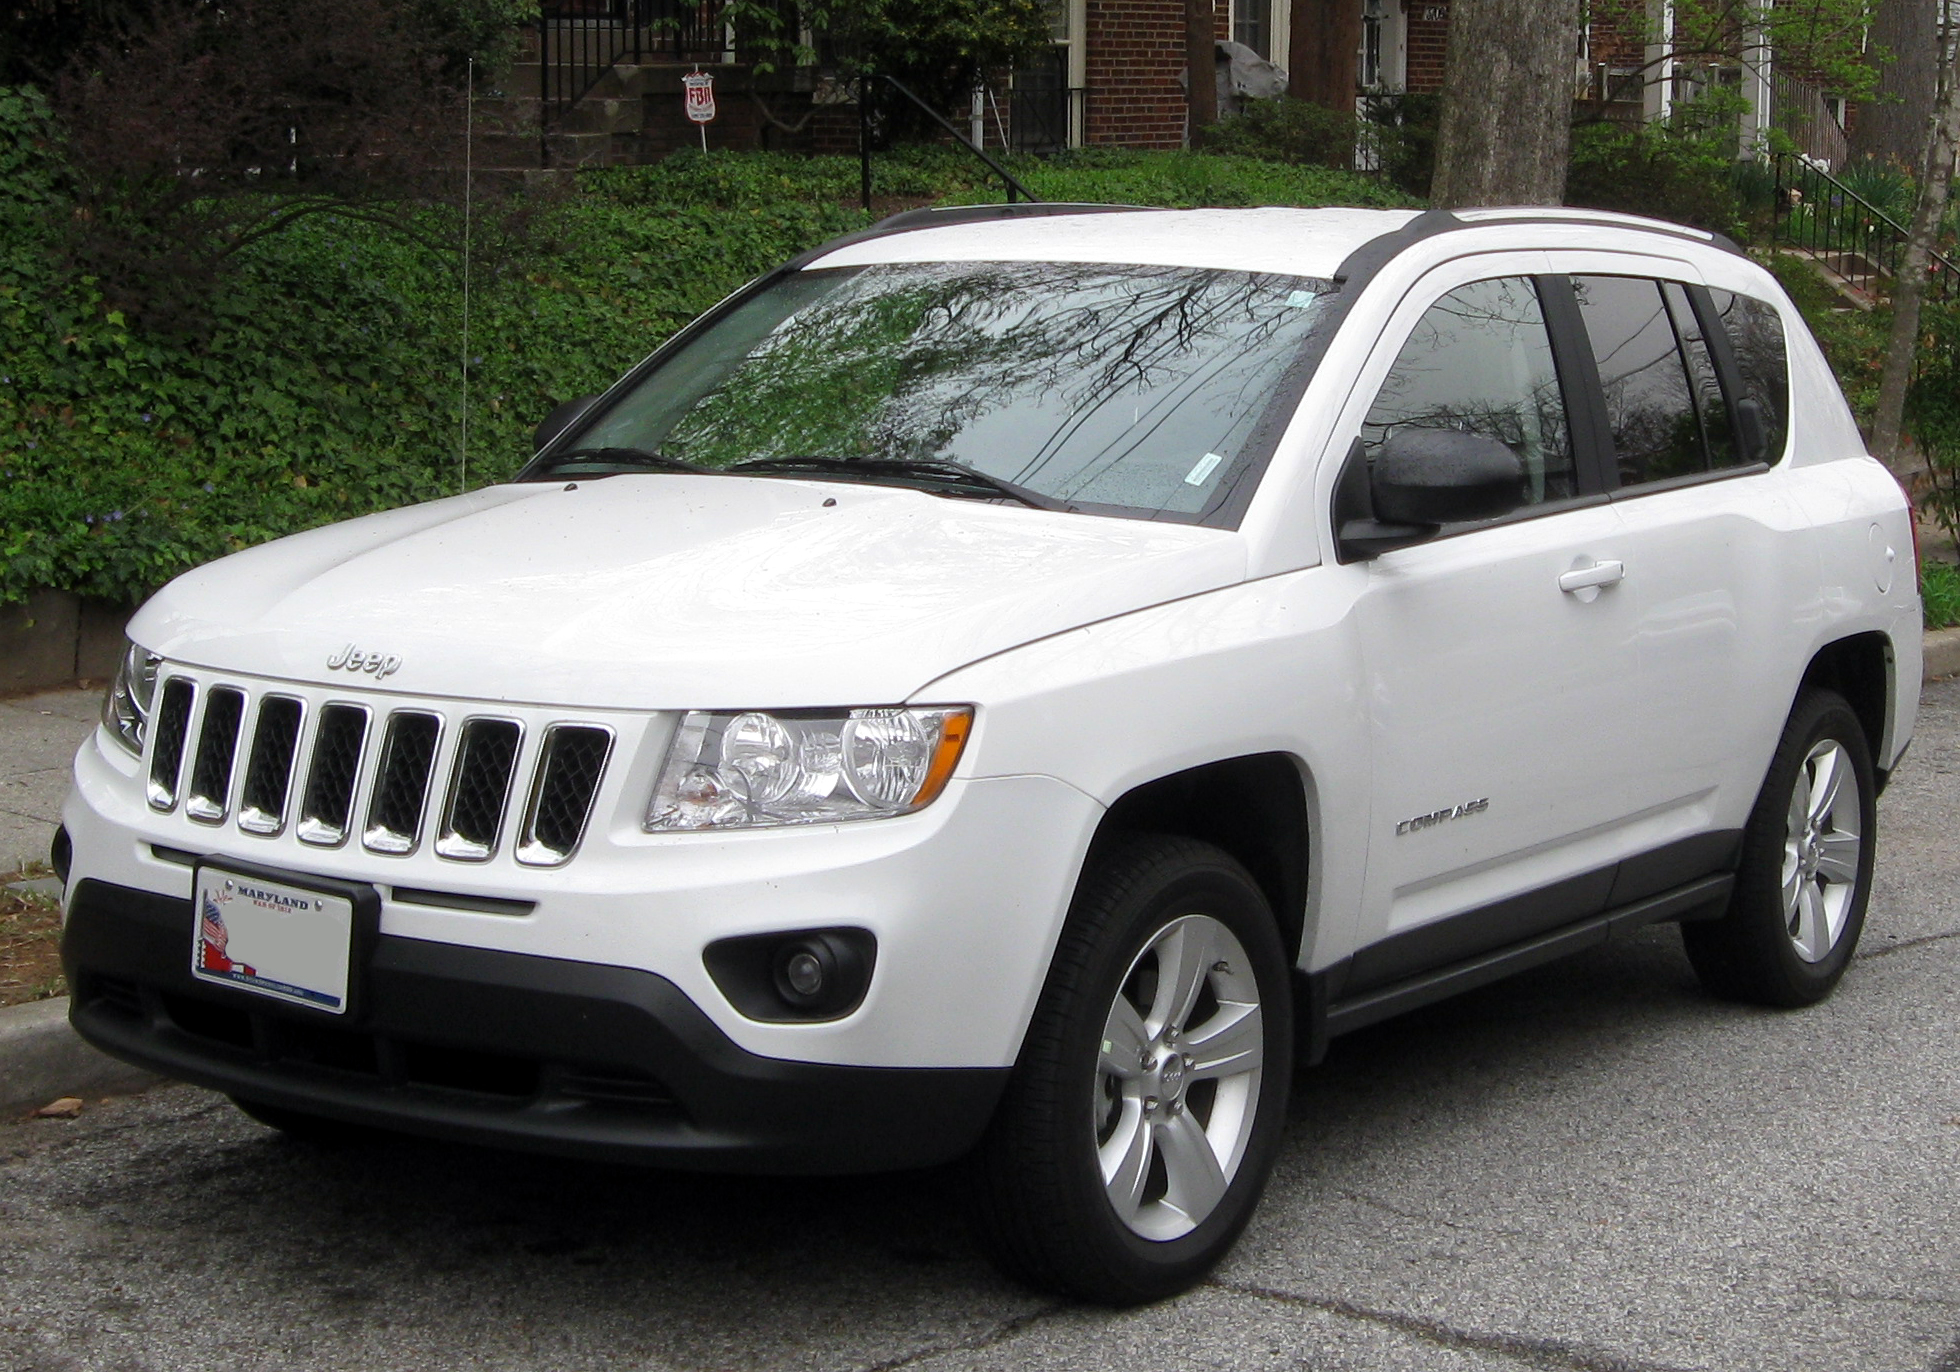 File Jeep Compass 03 21 2012 1 Jpg Wikimedia Commons